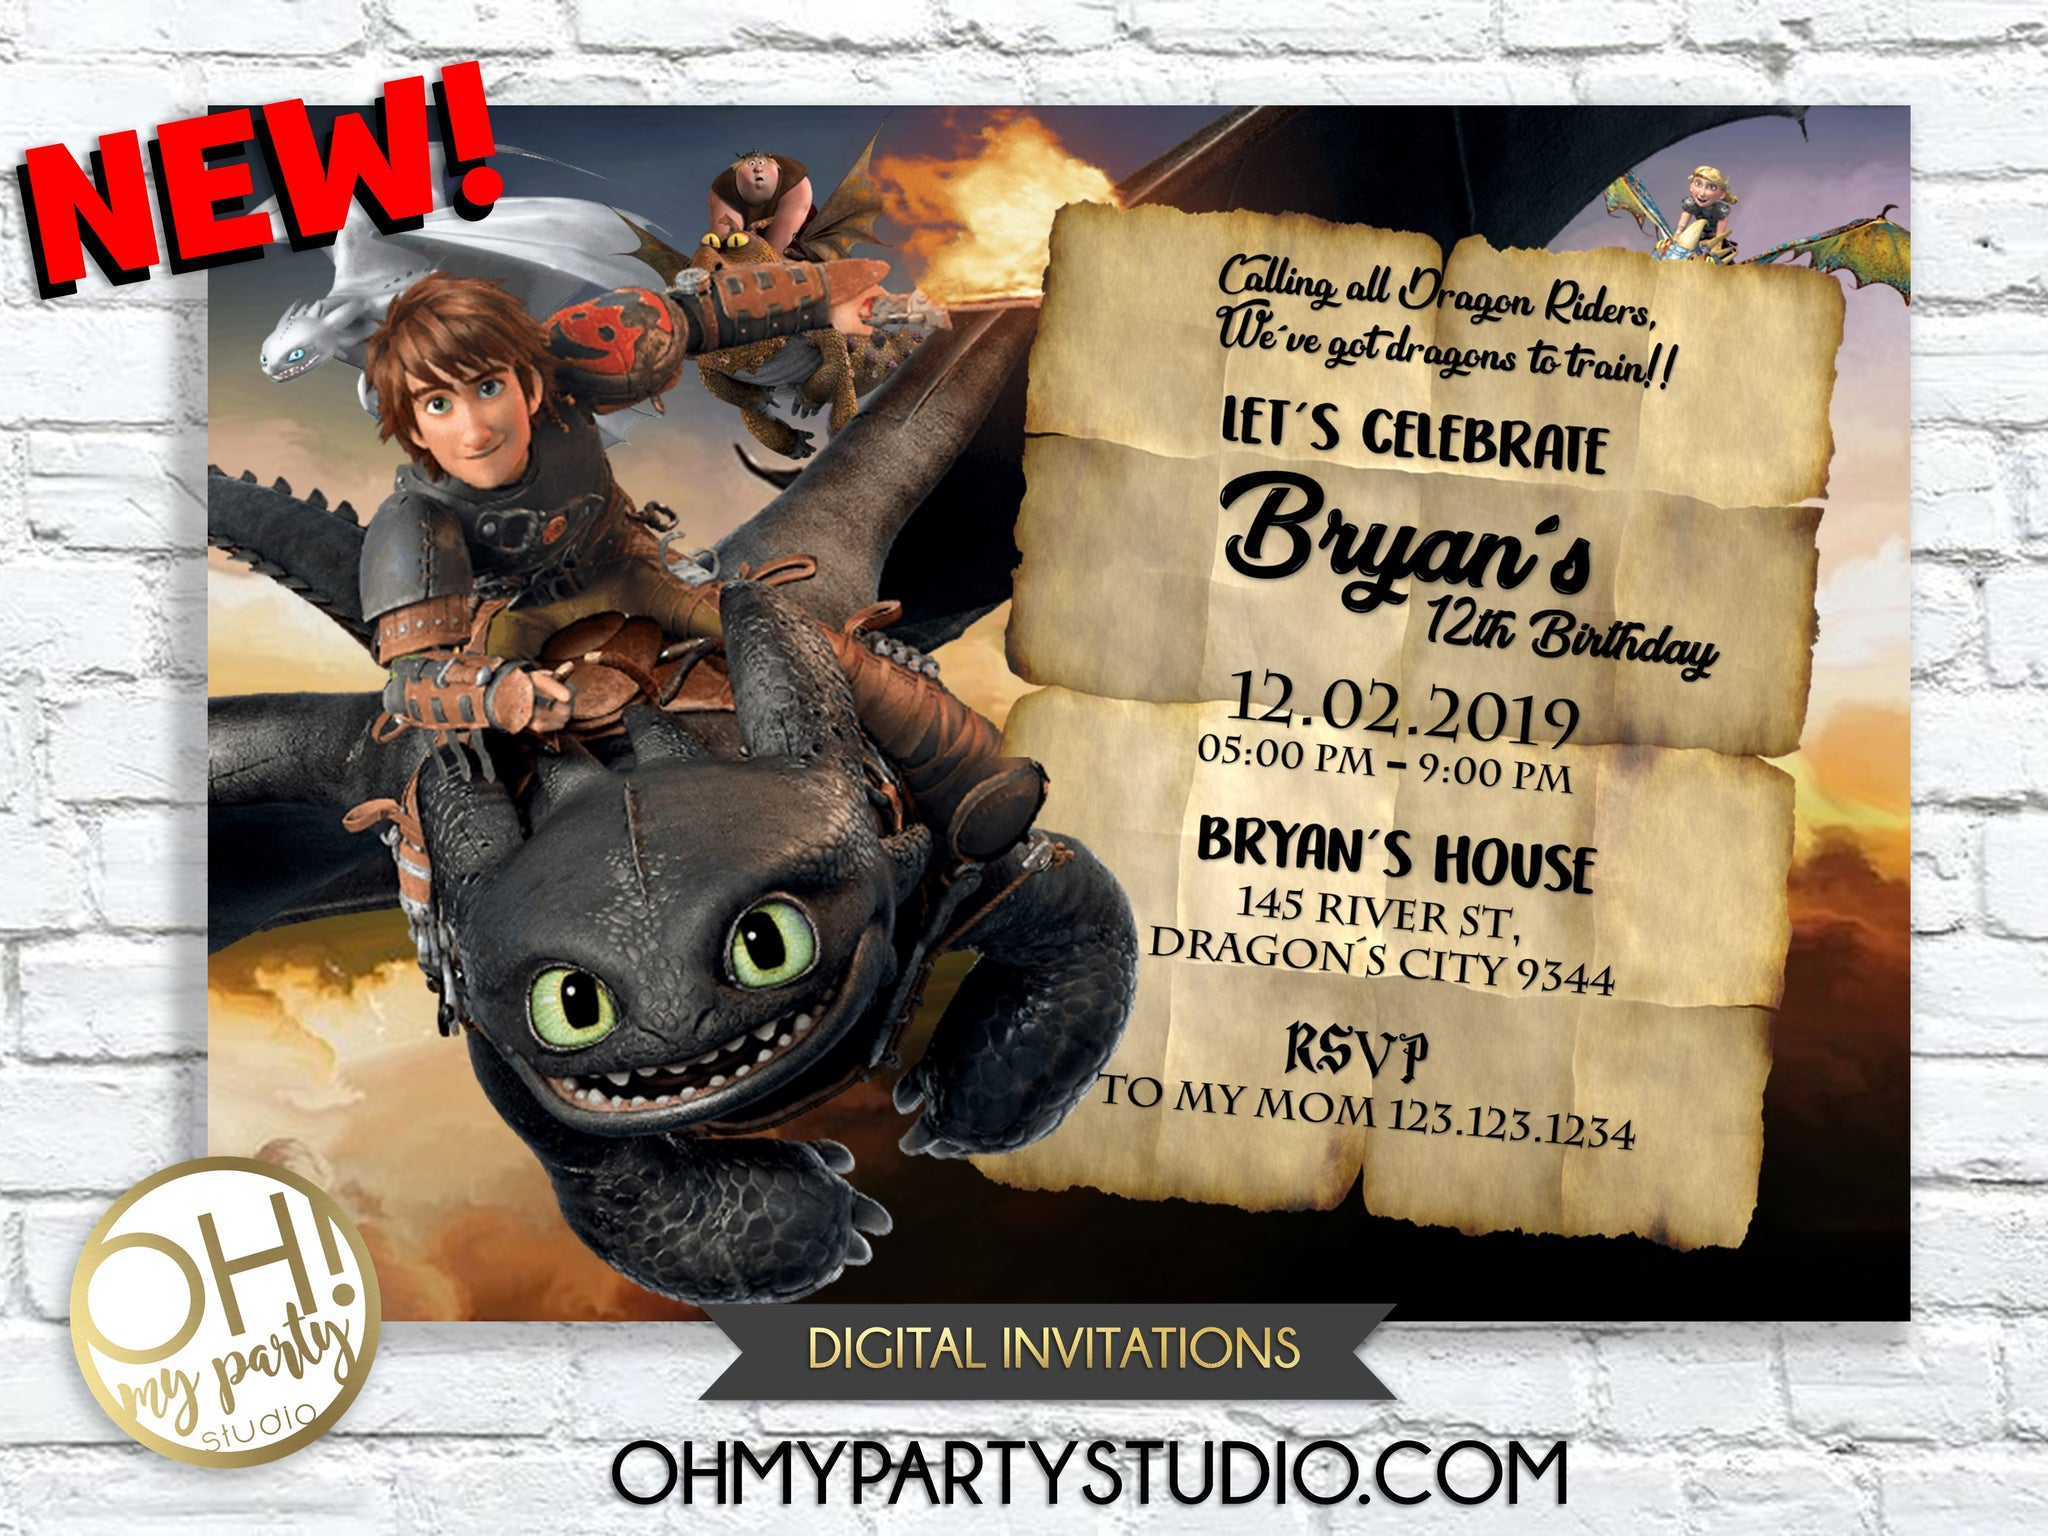 HOW TO TRAIN YOUR DRAGON INVITATION, HOW TO TRAIN YOUR DRAGON BIRTHDAY, HOW TO TRAIN YOUR DRAGON INVITATIONS, HOW TO TRAIN YOUR DRAGON PARTY